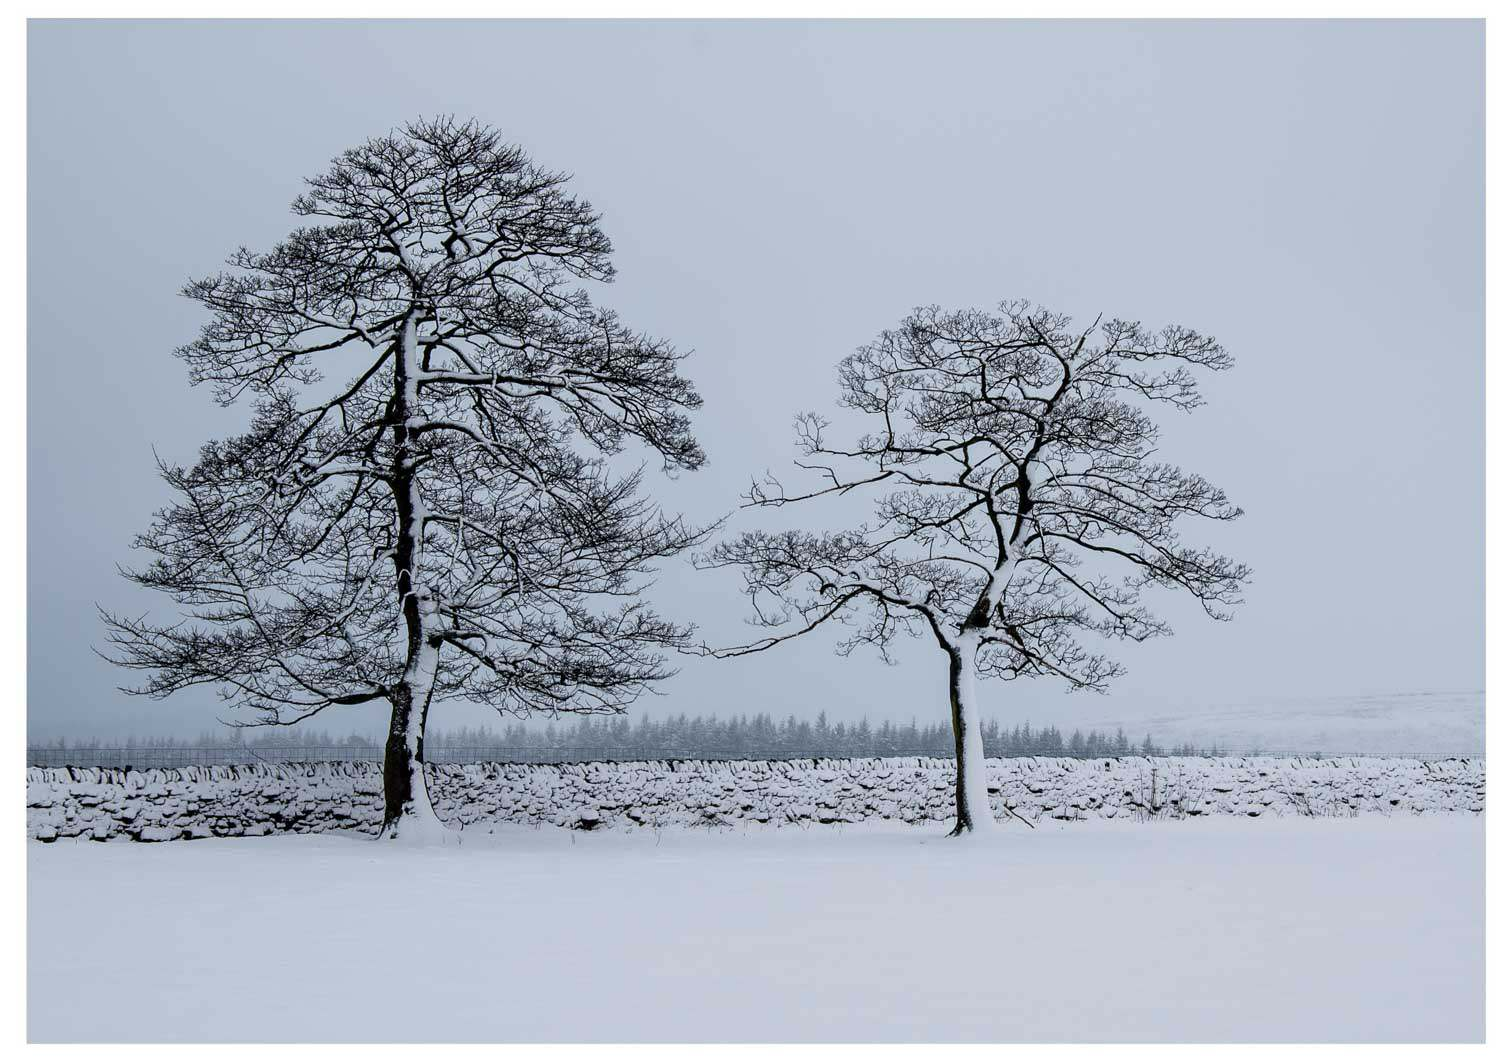 Mike Ford - Based in Yorkshire so had the fortune of weather to support this beautiful scene